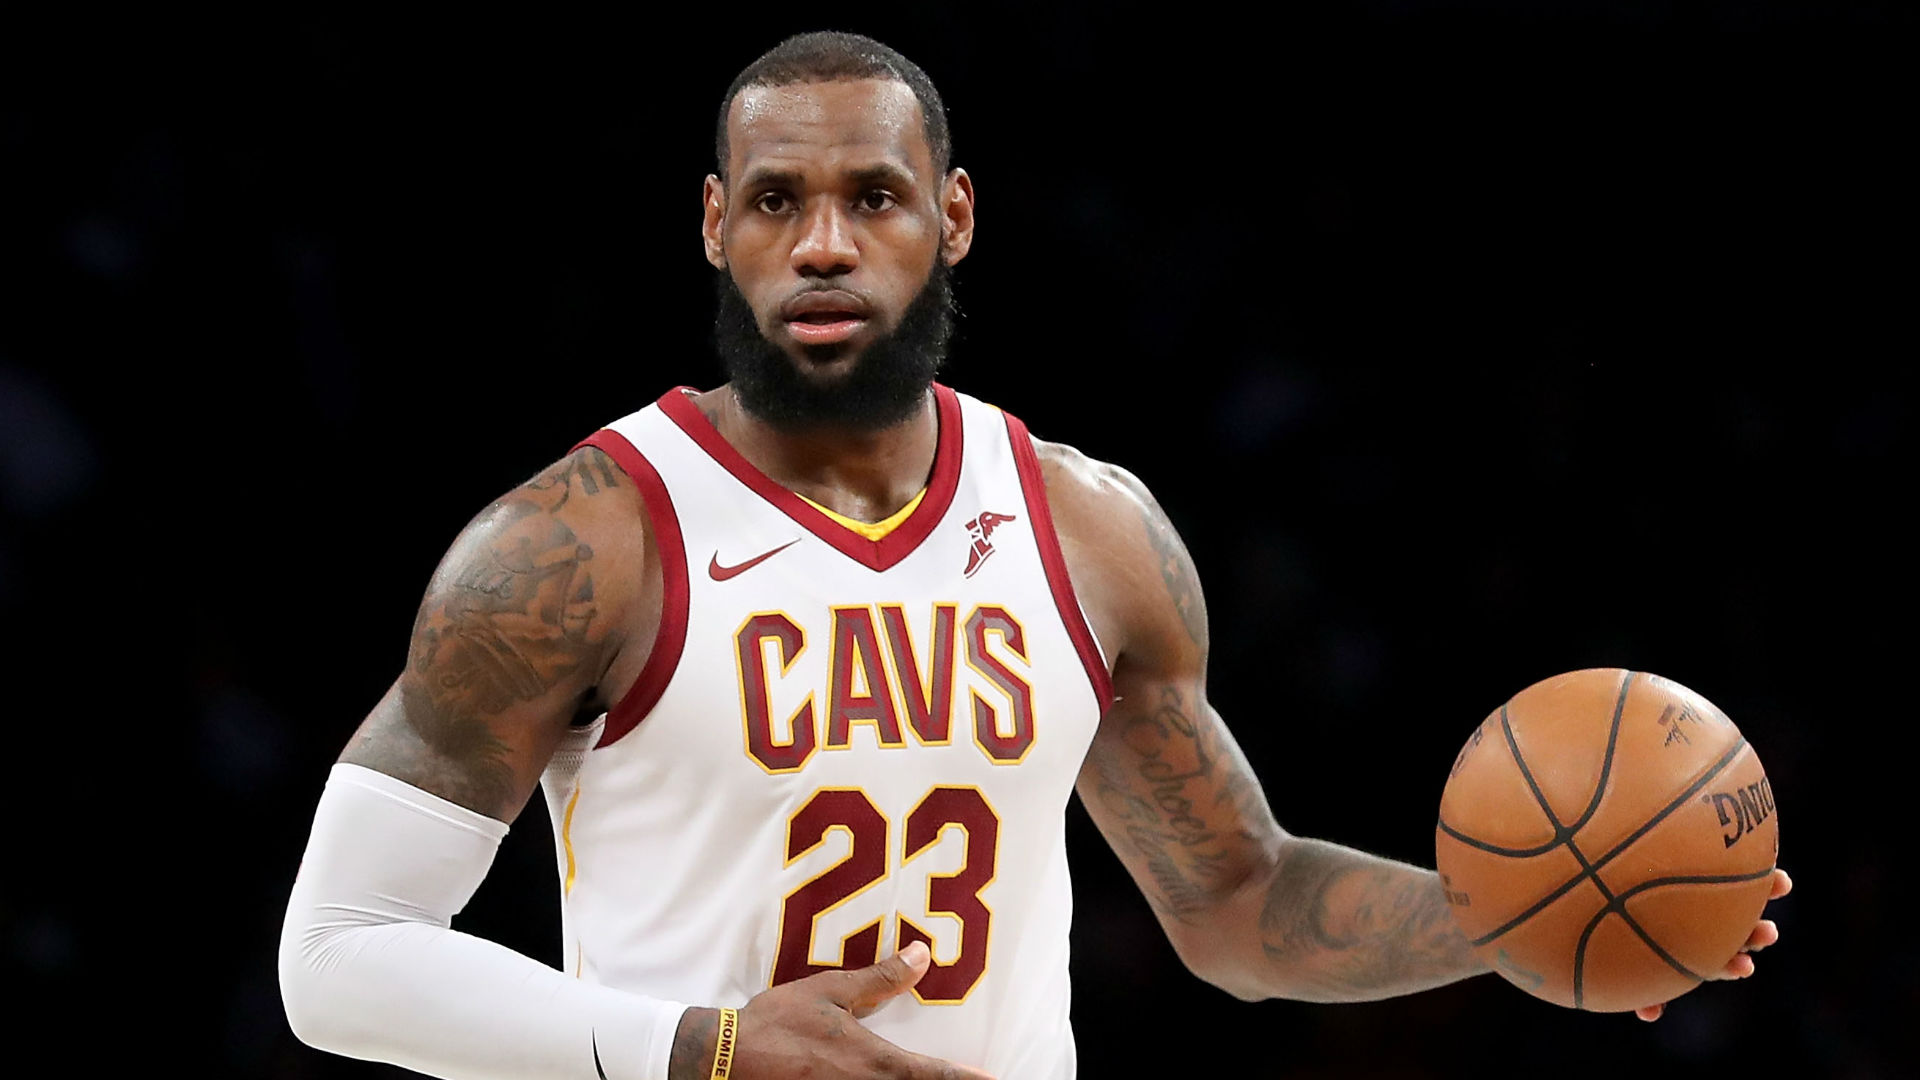 LeBron James nearing insane Michael Jordan record